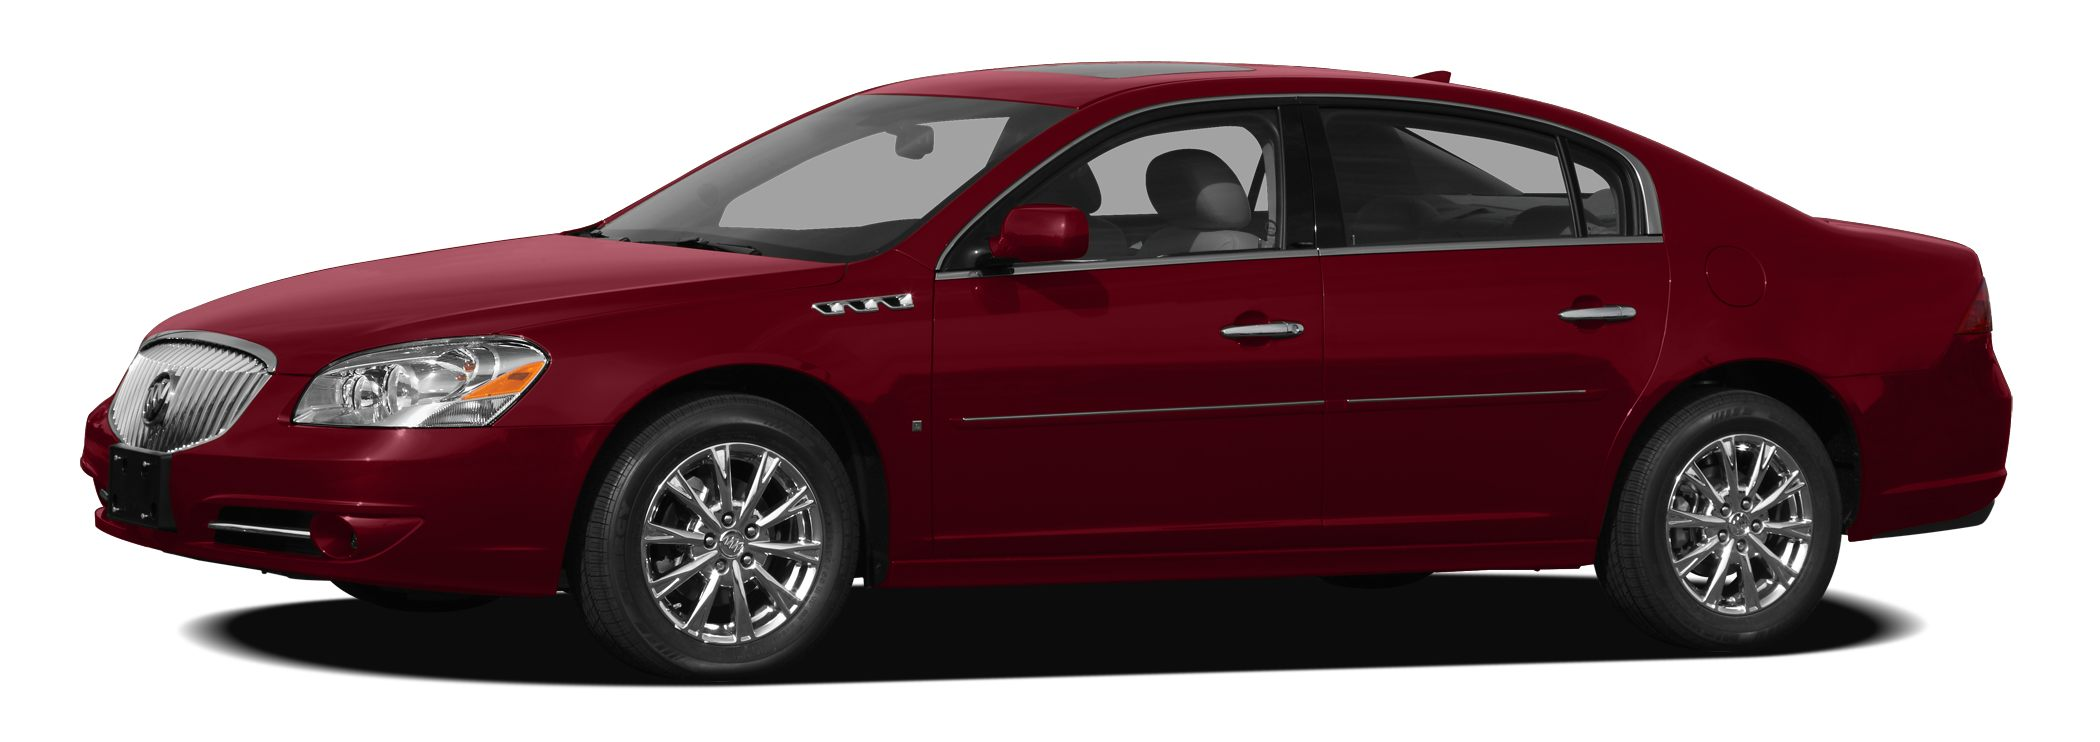 2010 Buick Lucerne CX DISCLAIMER We are excited to offer this vehicle to you but it is currently